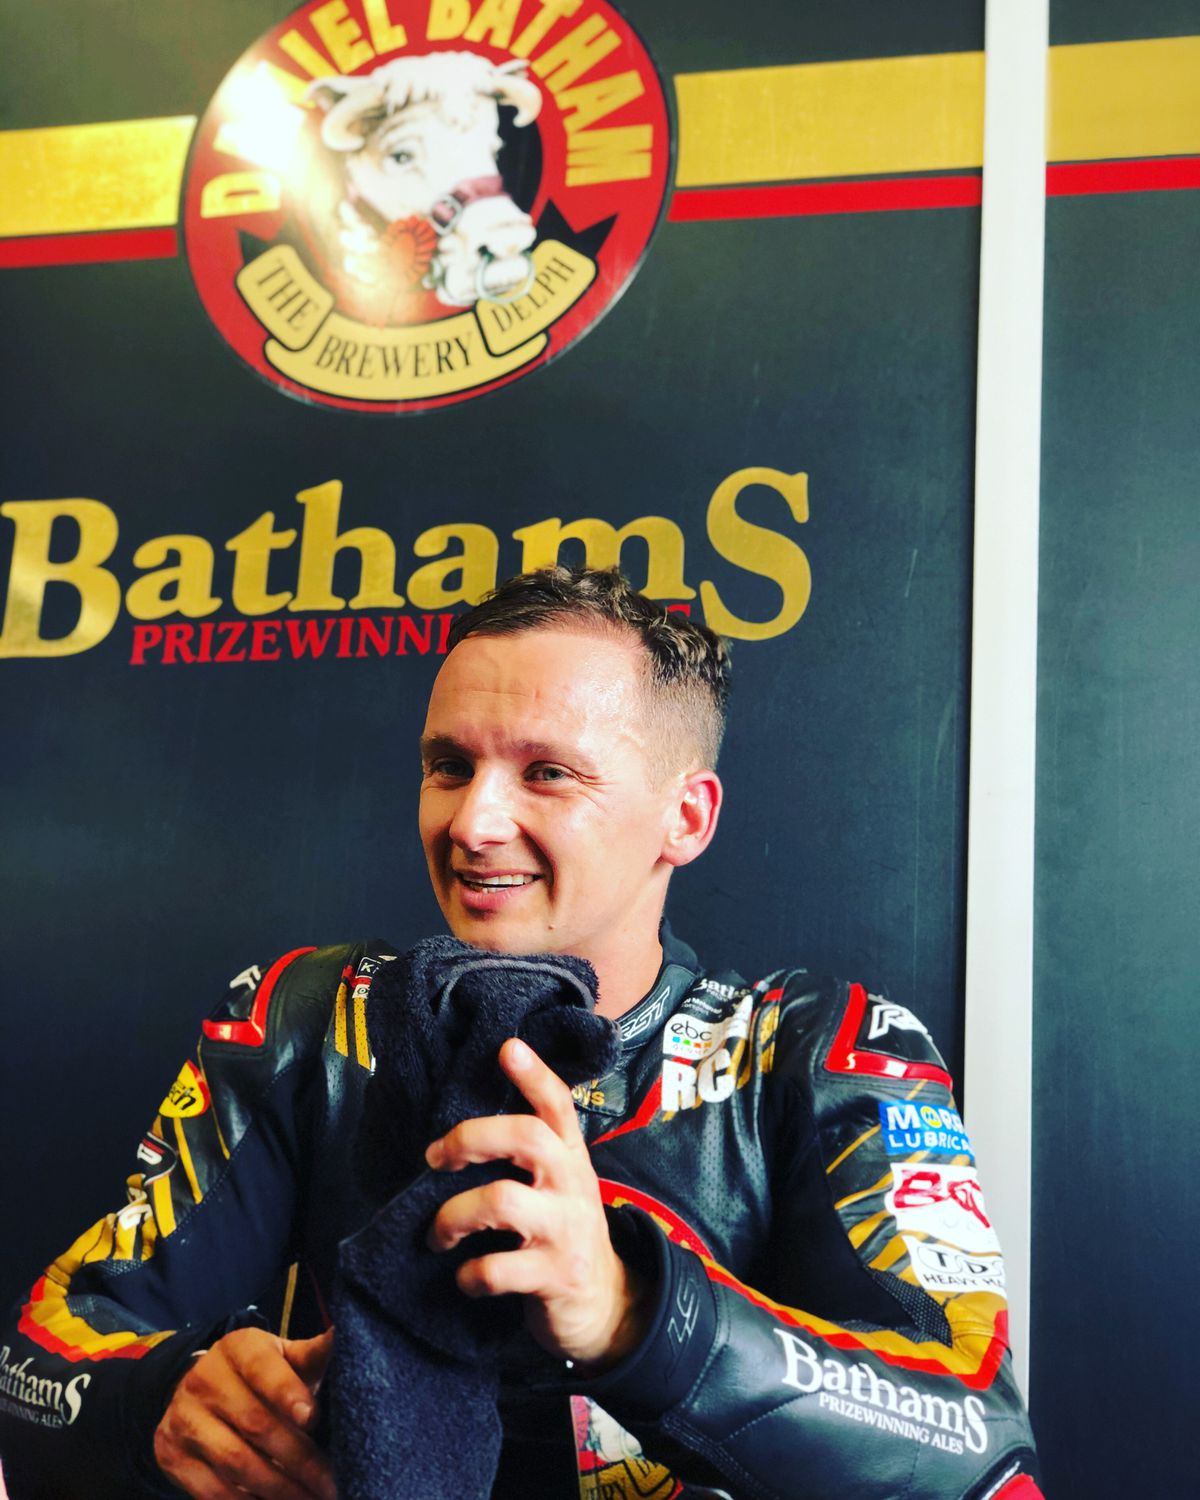 Richard Cooper hopes to return to racing this year